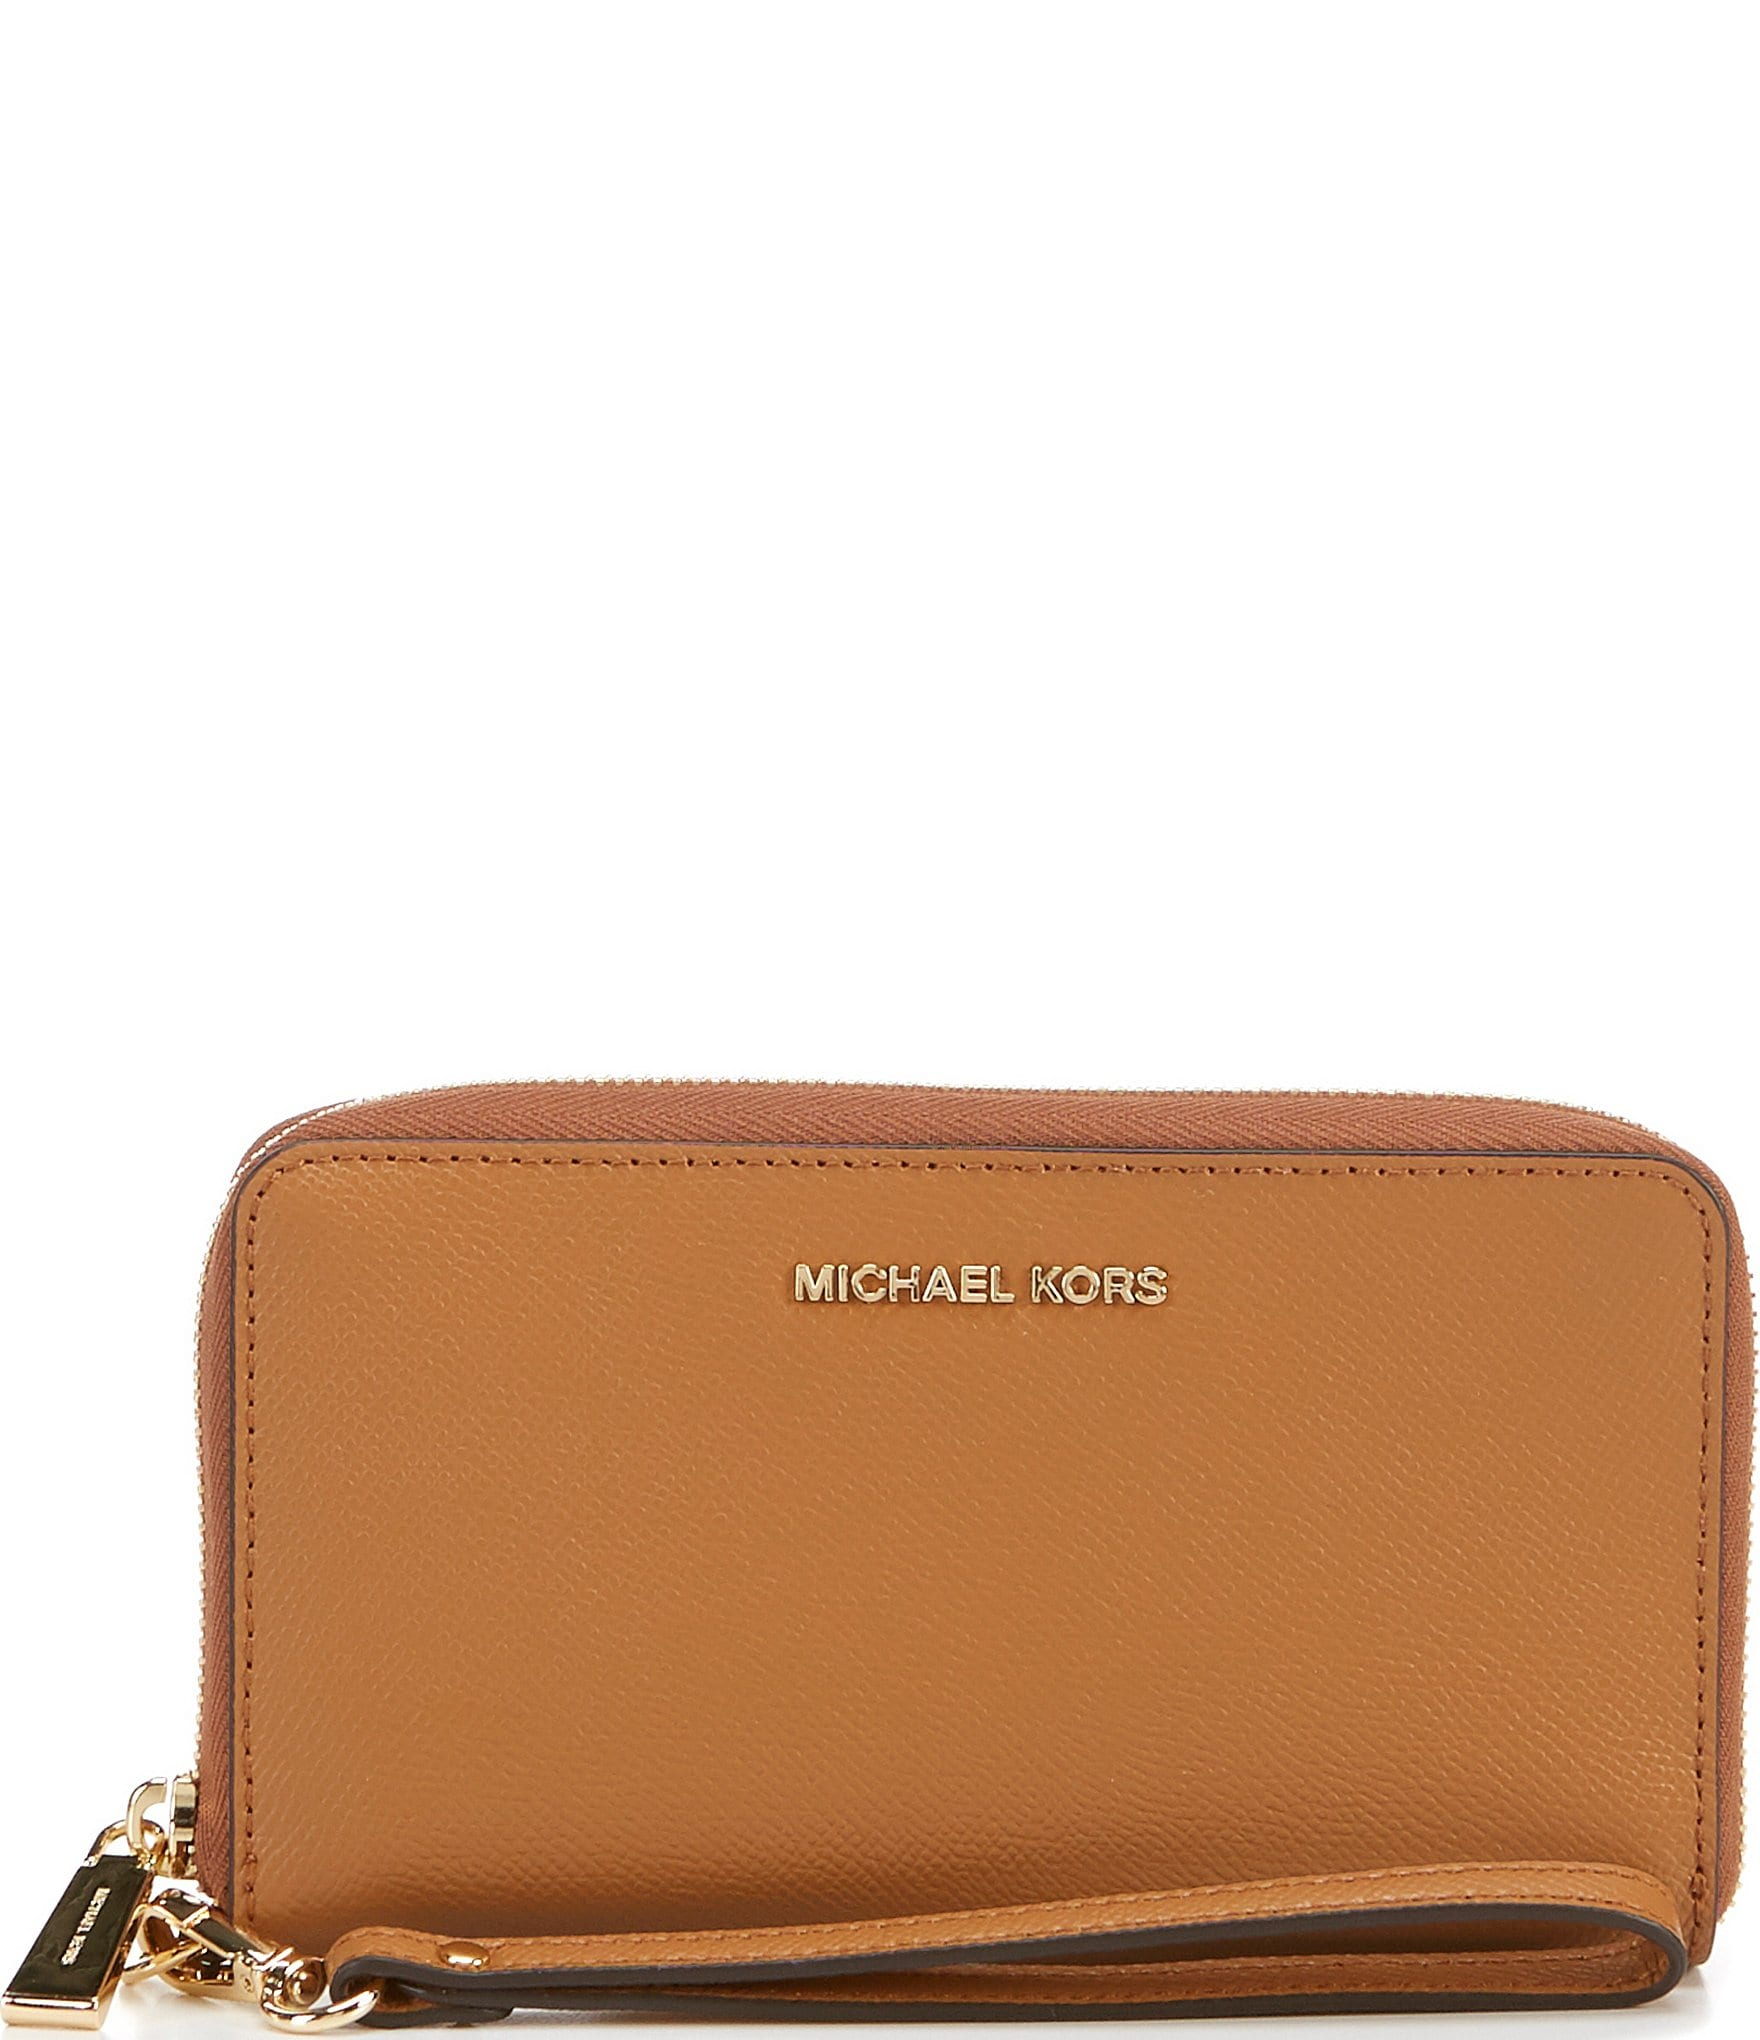 michael kors wallet jet set slim michael kors bedding queen